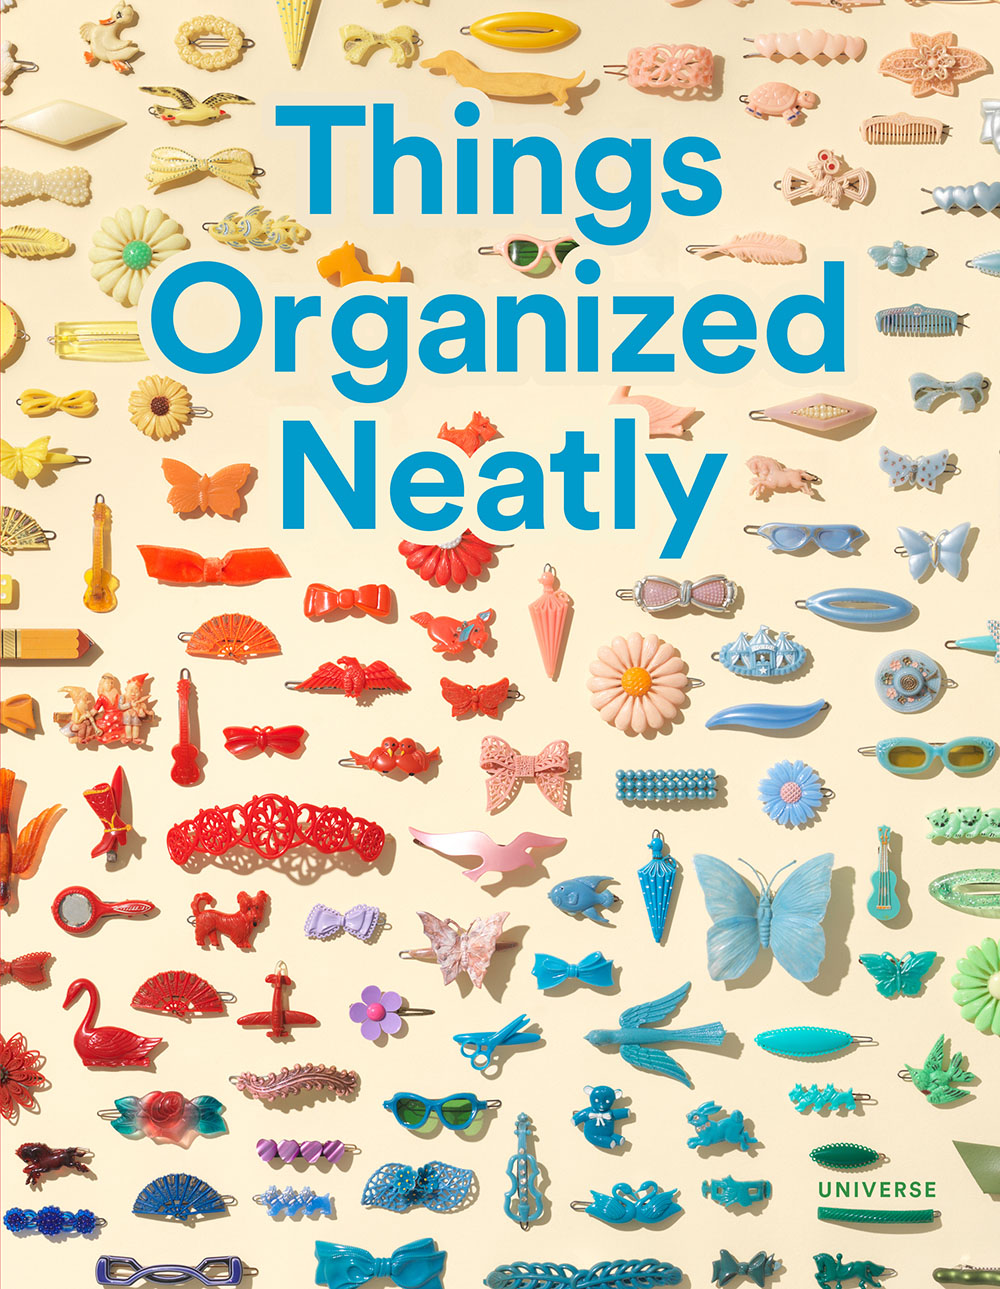 Things Organized Neatly cover